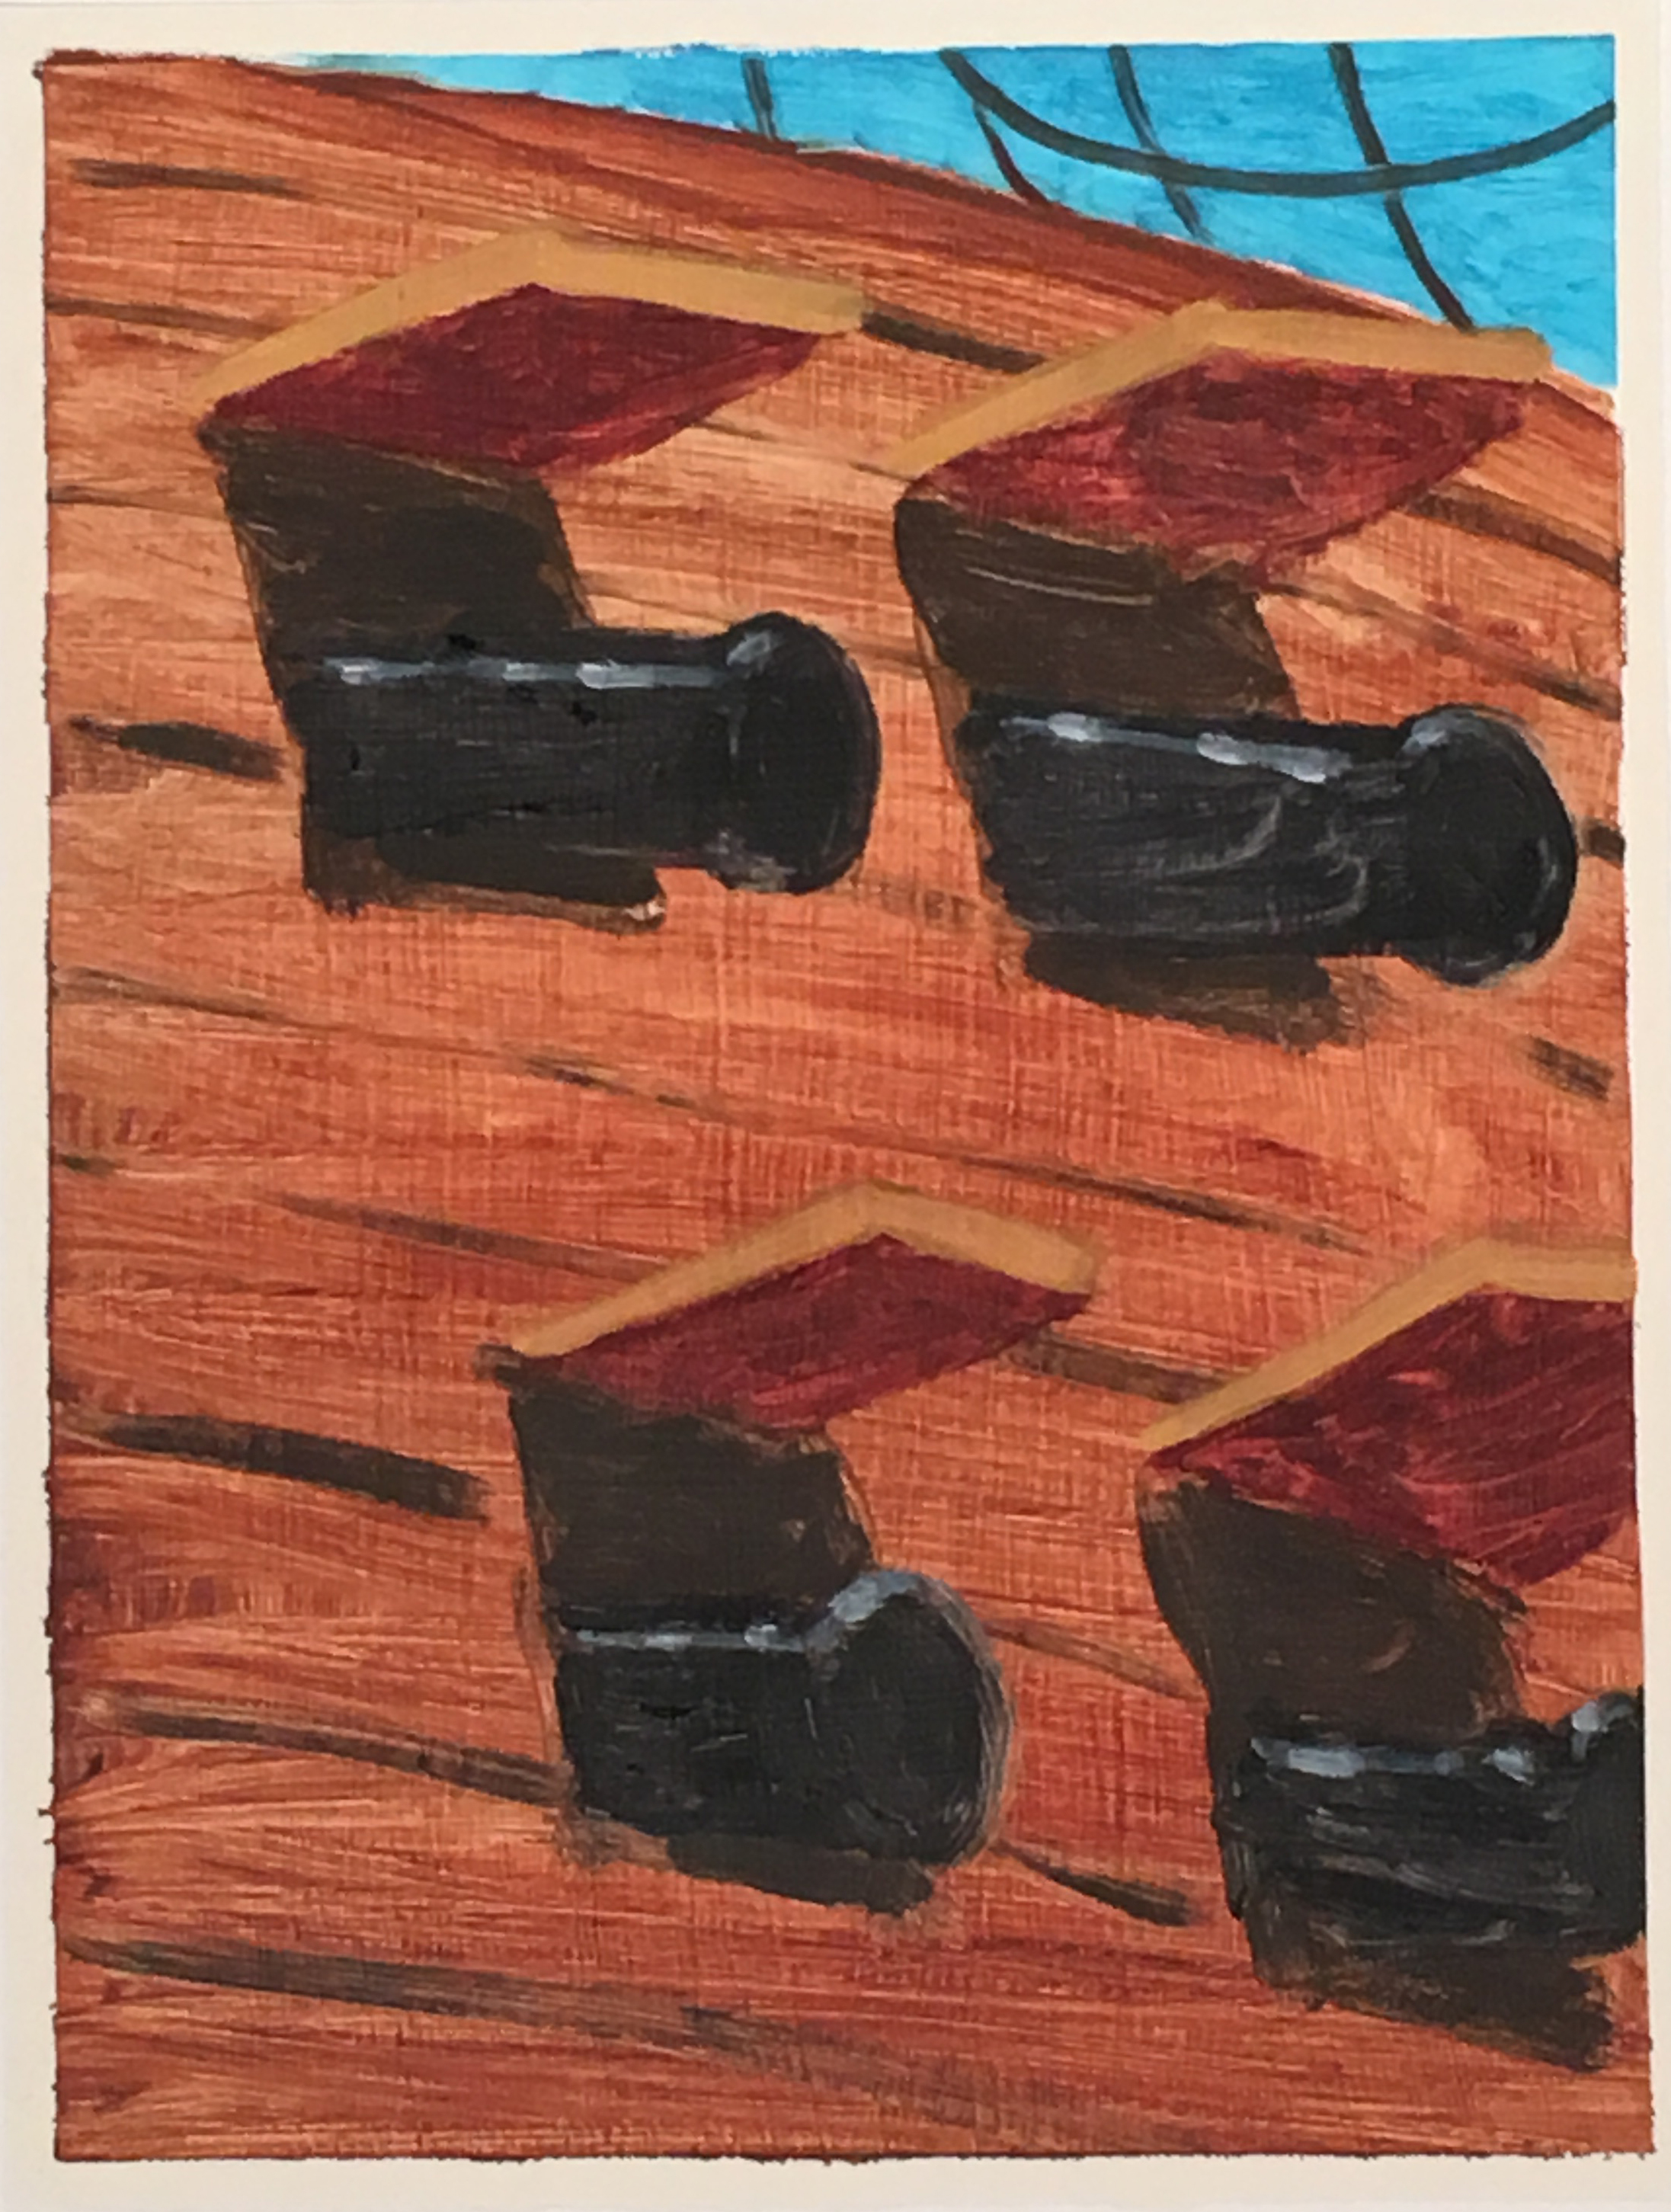 Cannons oil on paper 9 x 12 inches 2017